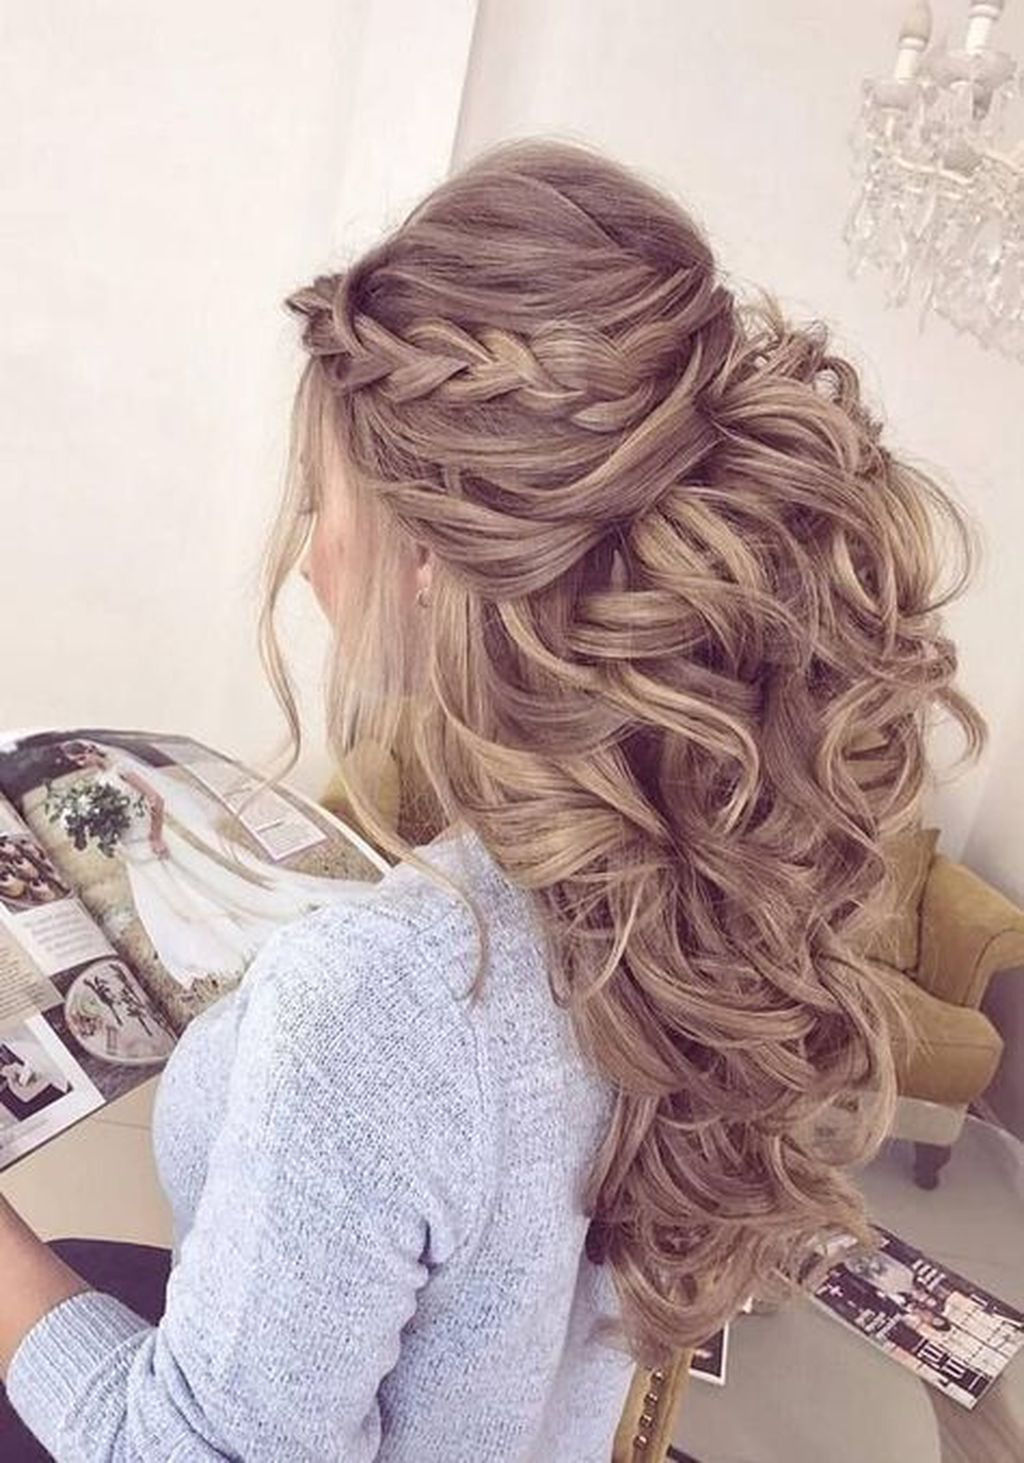 40 perfect wedding hairstyles ideas for long hair